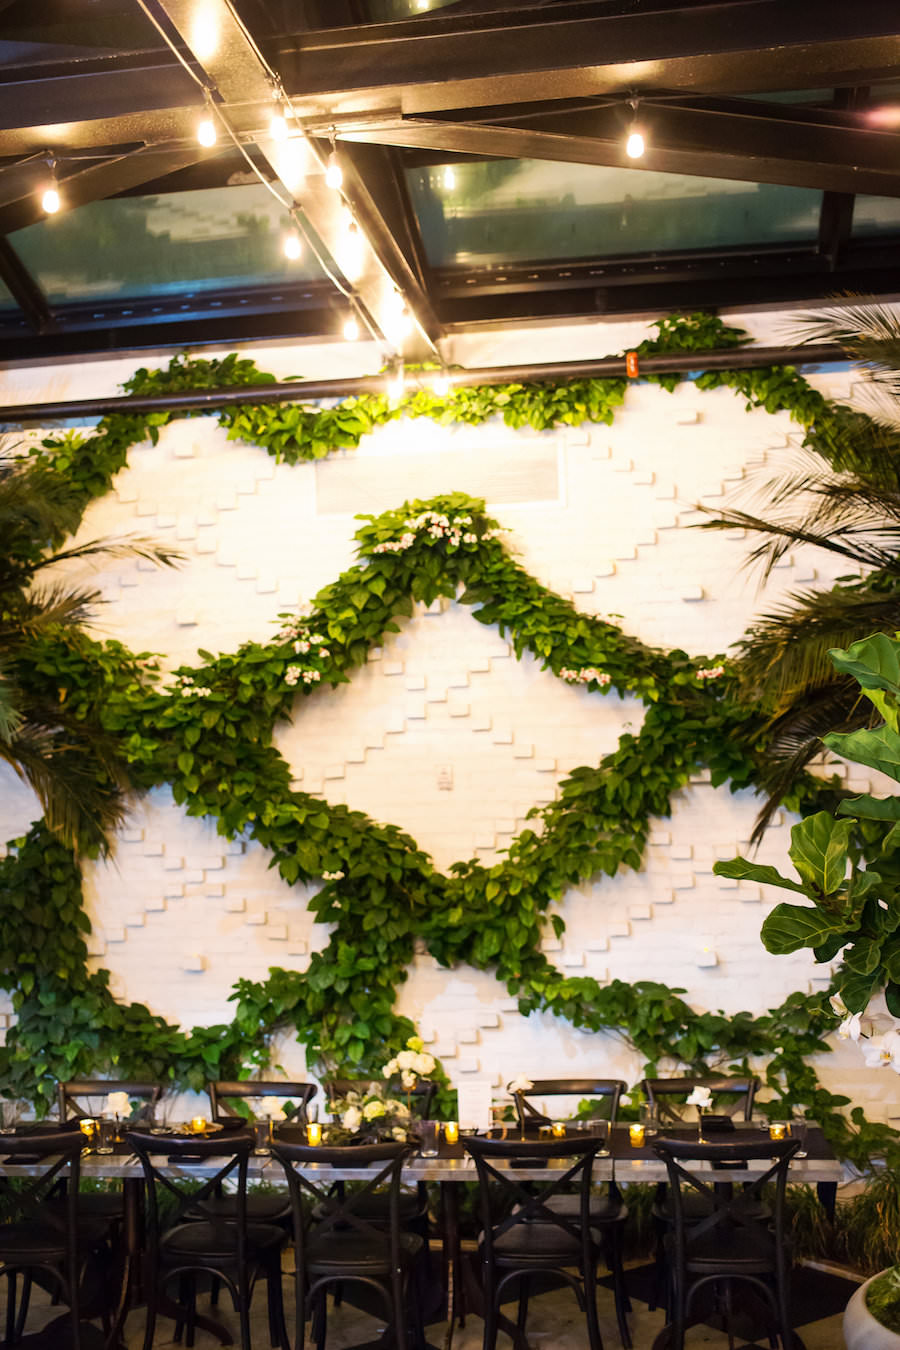 Ivy Wall Interior at the Oxford Exchange Wedding Reception Venue in South Tampa FL